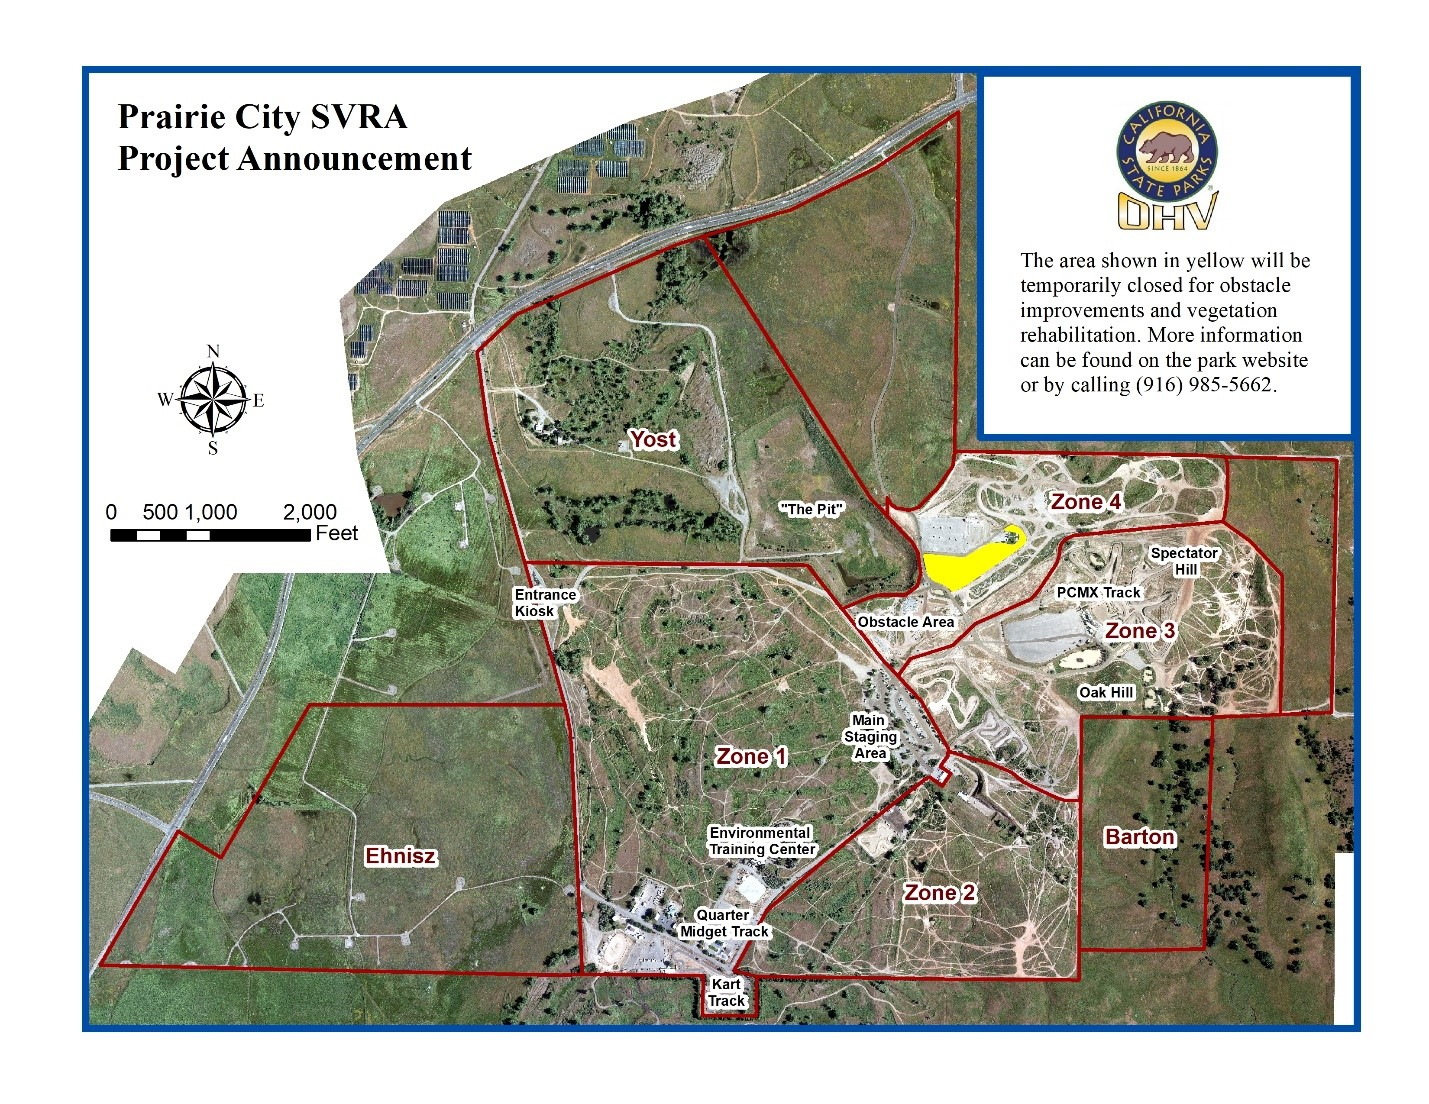 Prairie City SVRA re-vegetation project announcement - 4x4 Area temporary closure